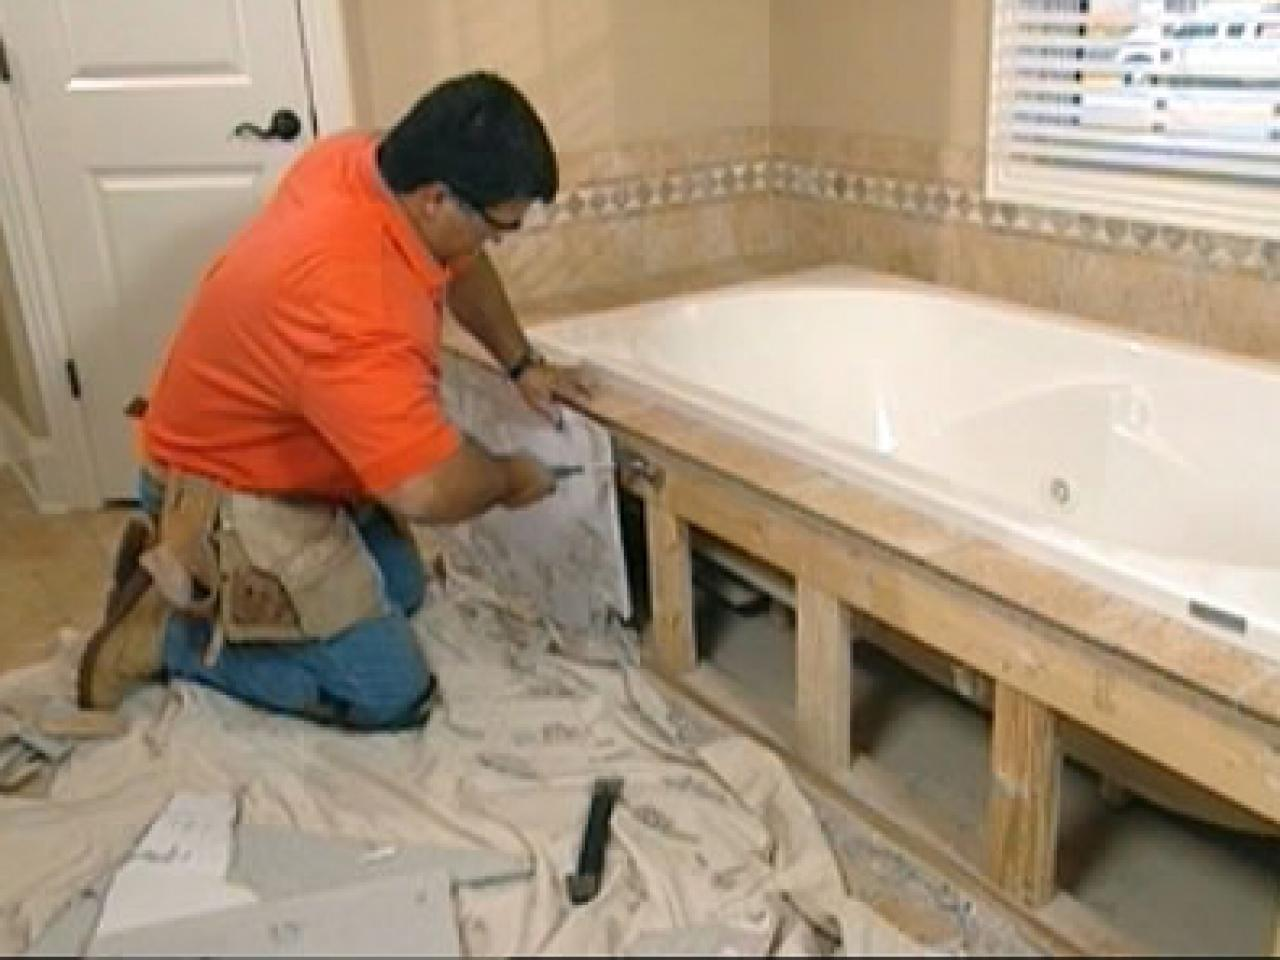 how to install a clawfoot tub Claw Foot Tub Installation: Surround Demolition | how tos | DIY how to install a clawfoot tub